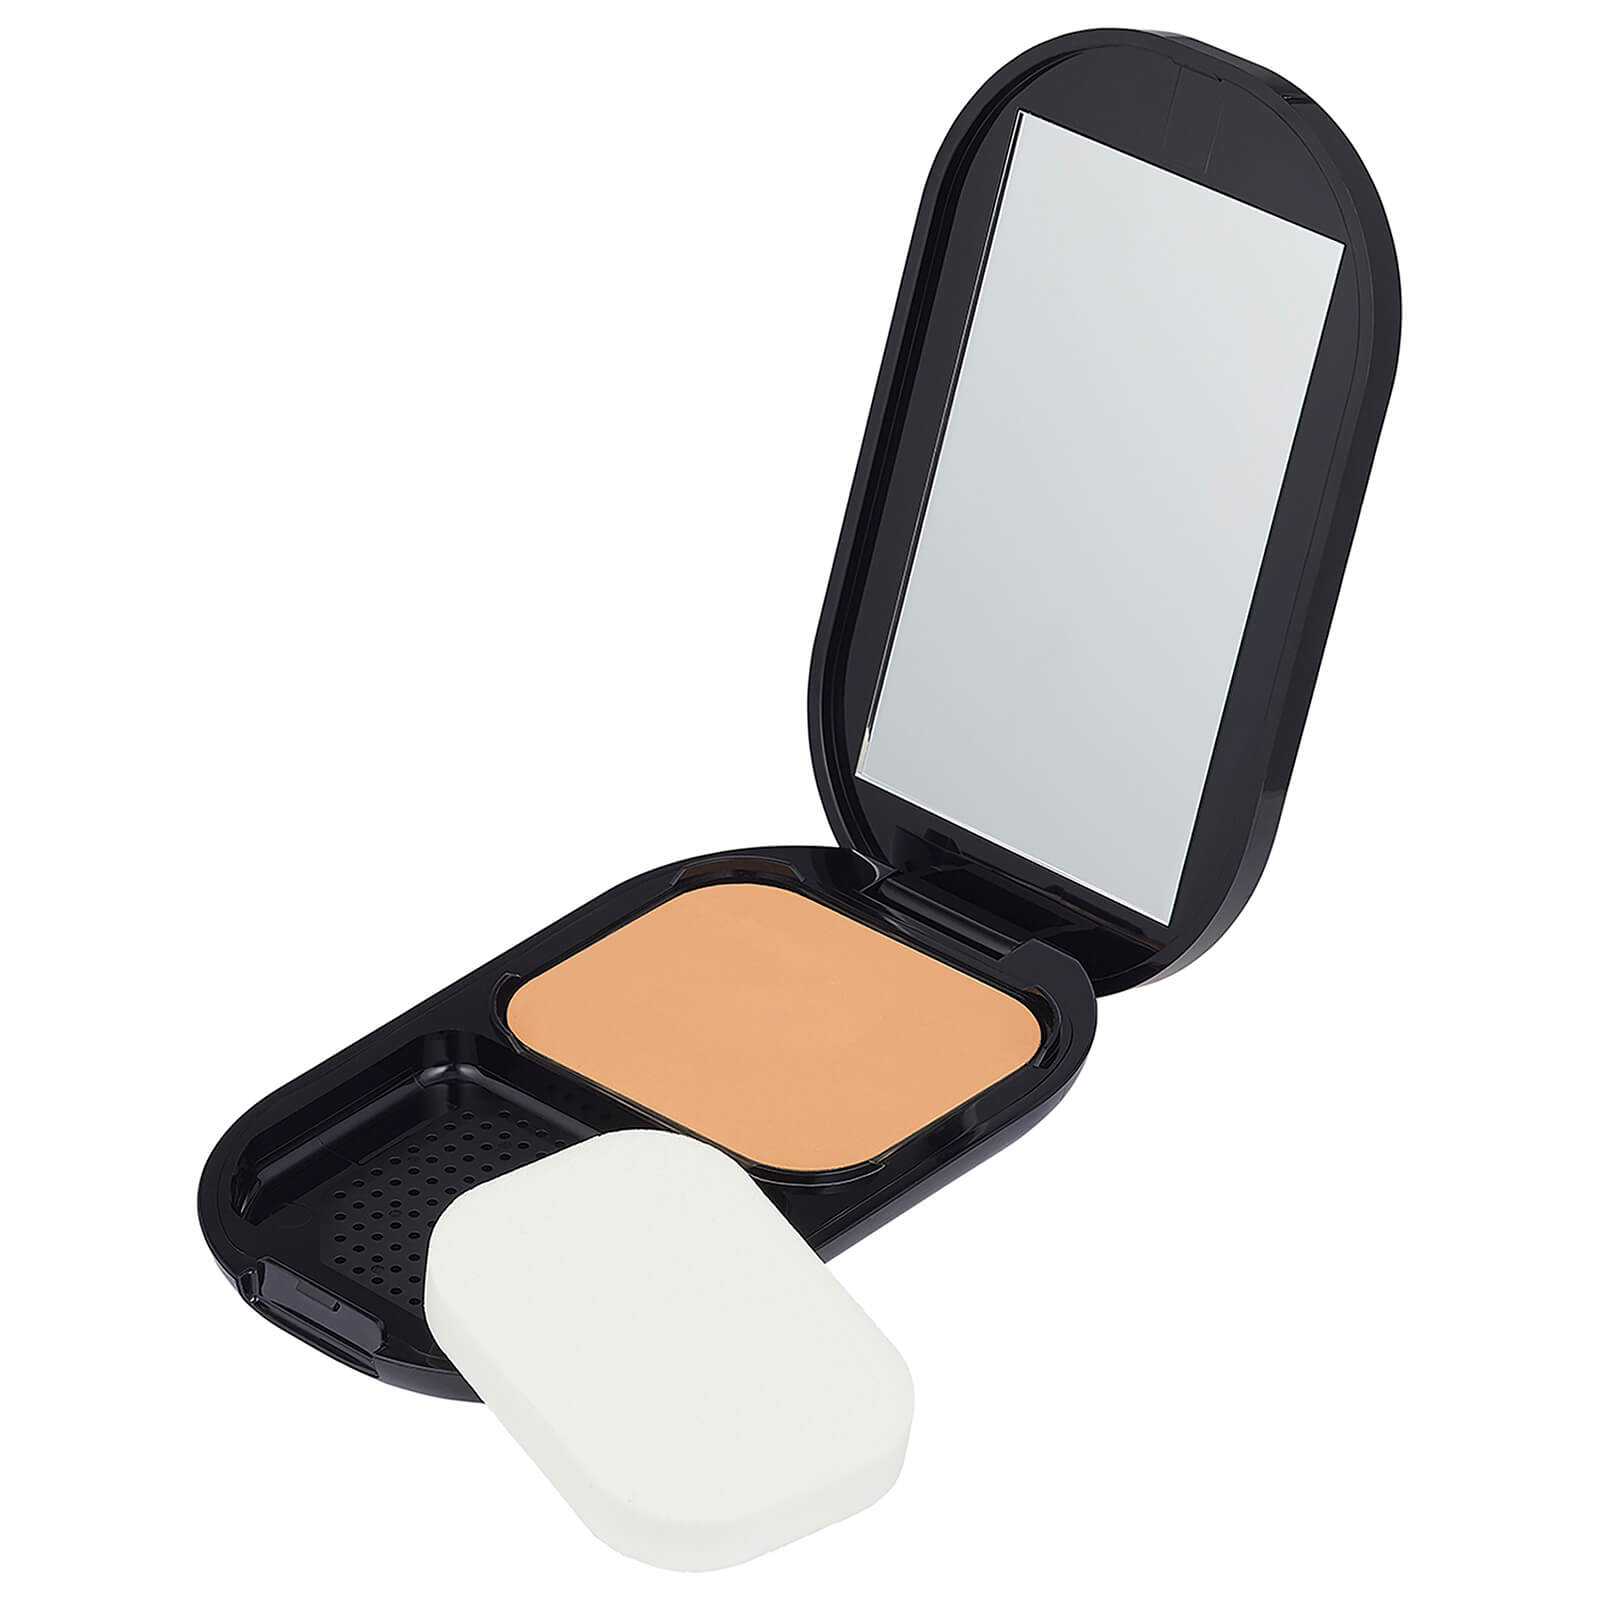 Max Factor Facefinity Compact Foundation 10g - Number 006 - Golden